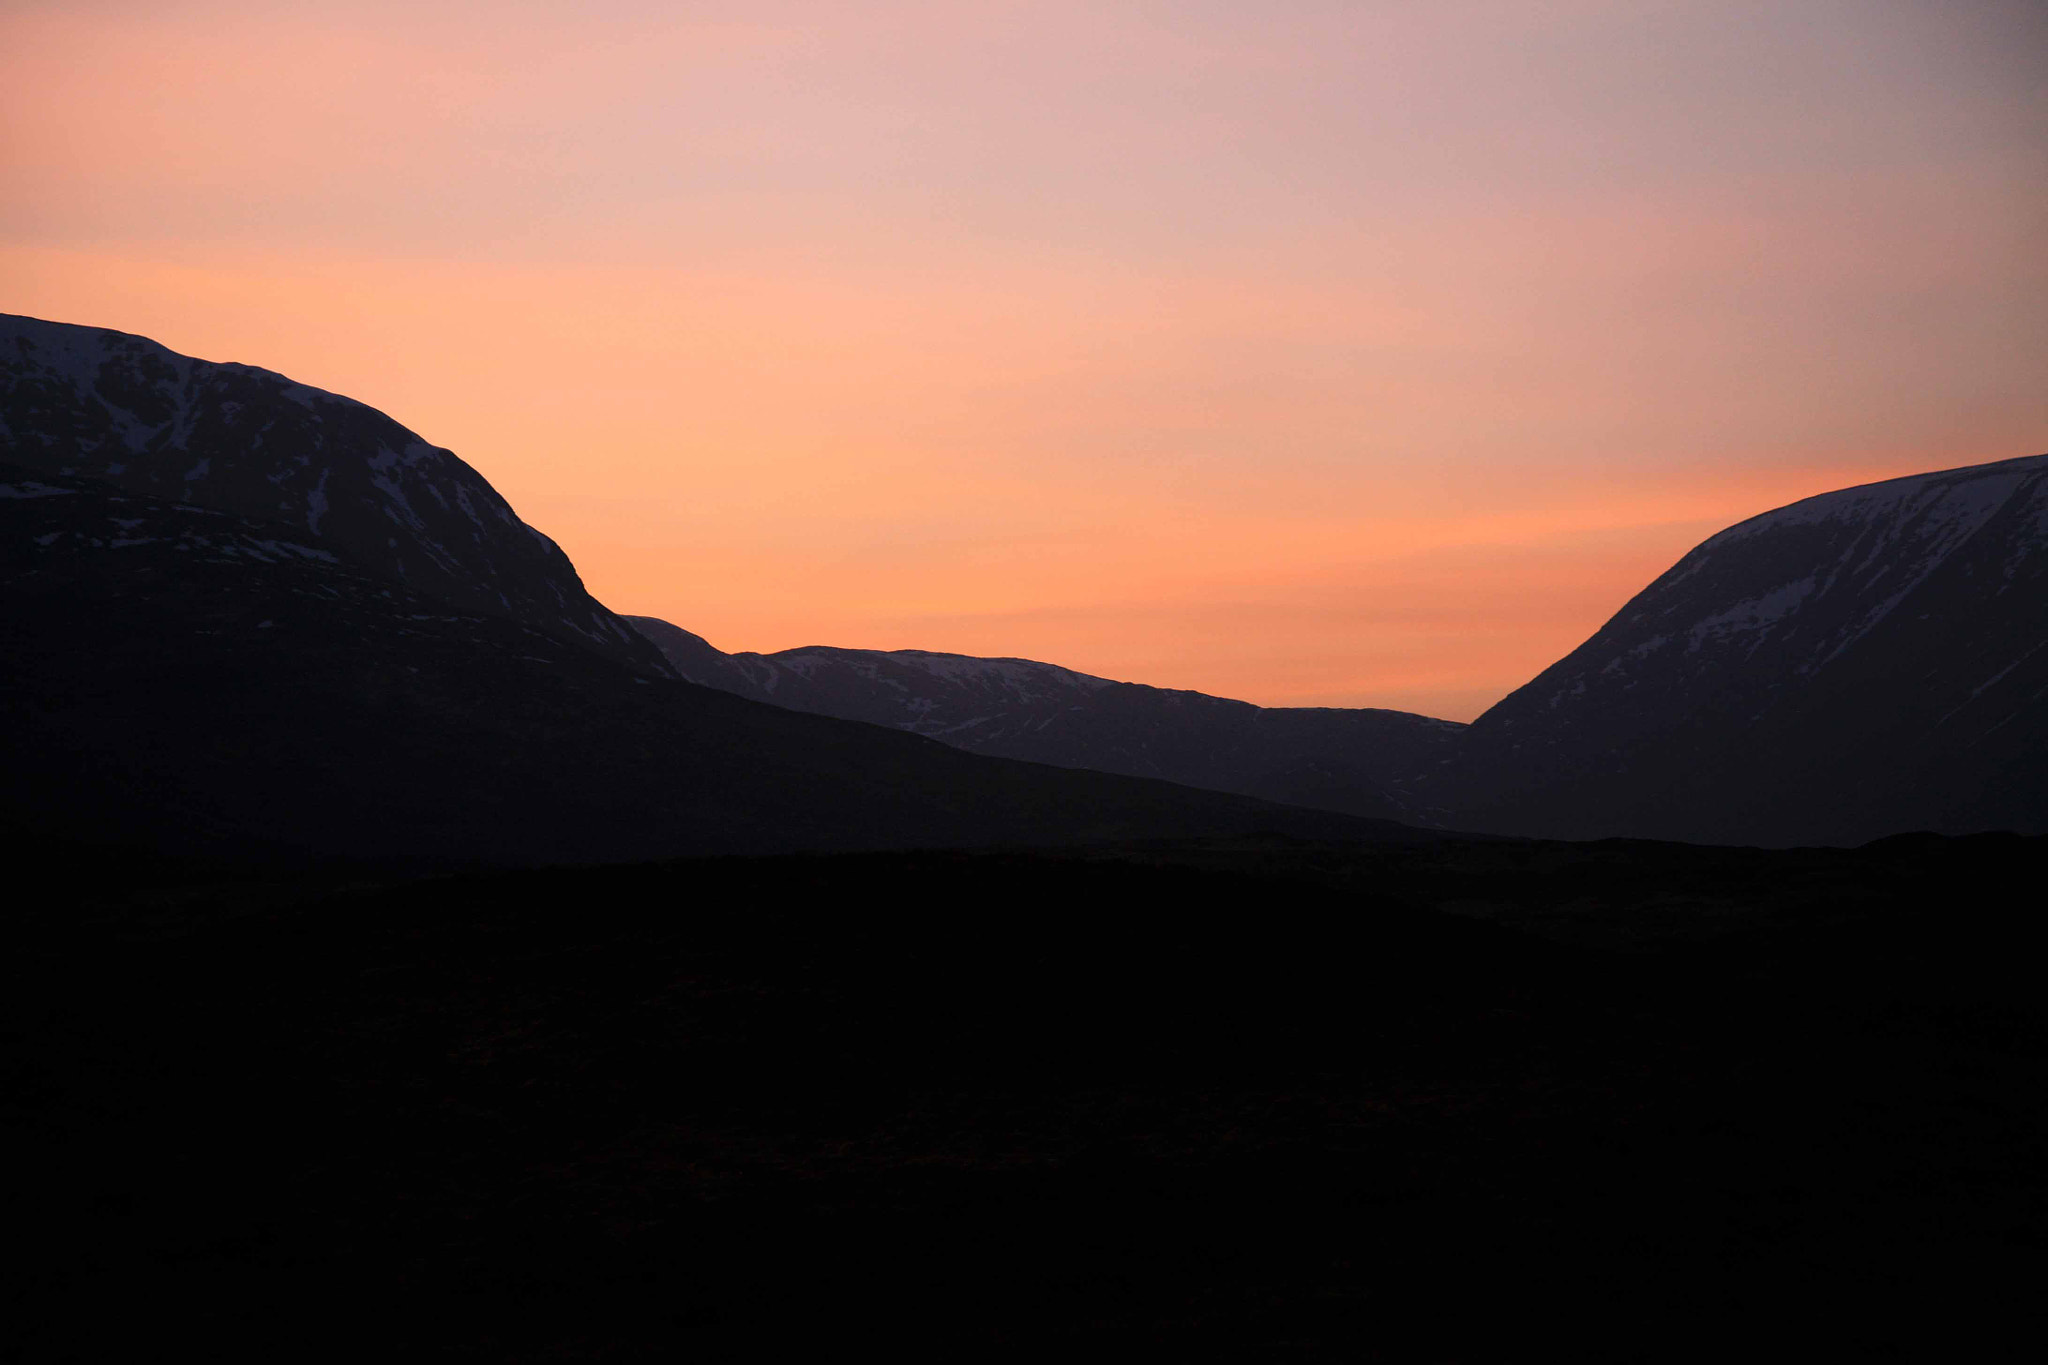 Photograph Glencoe at Dusk by Steven Power on 500px